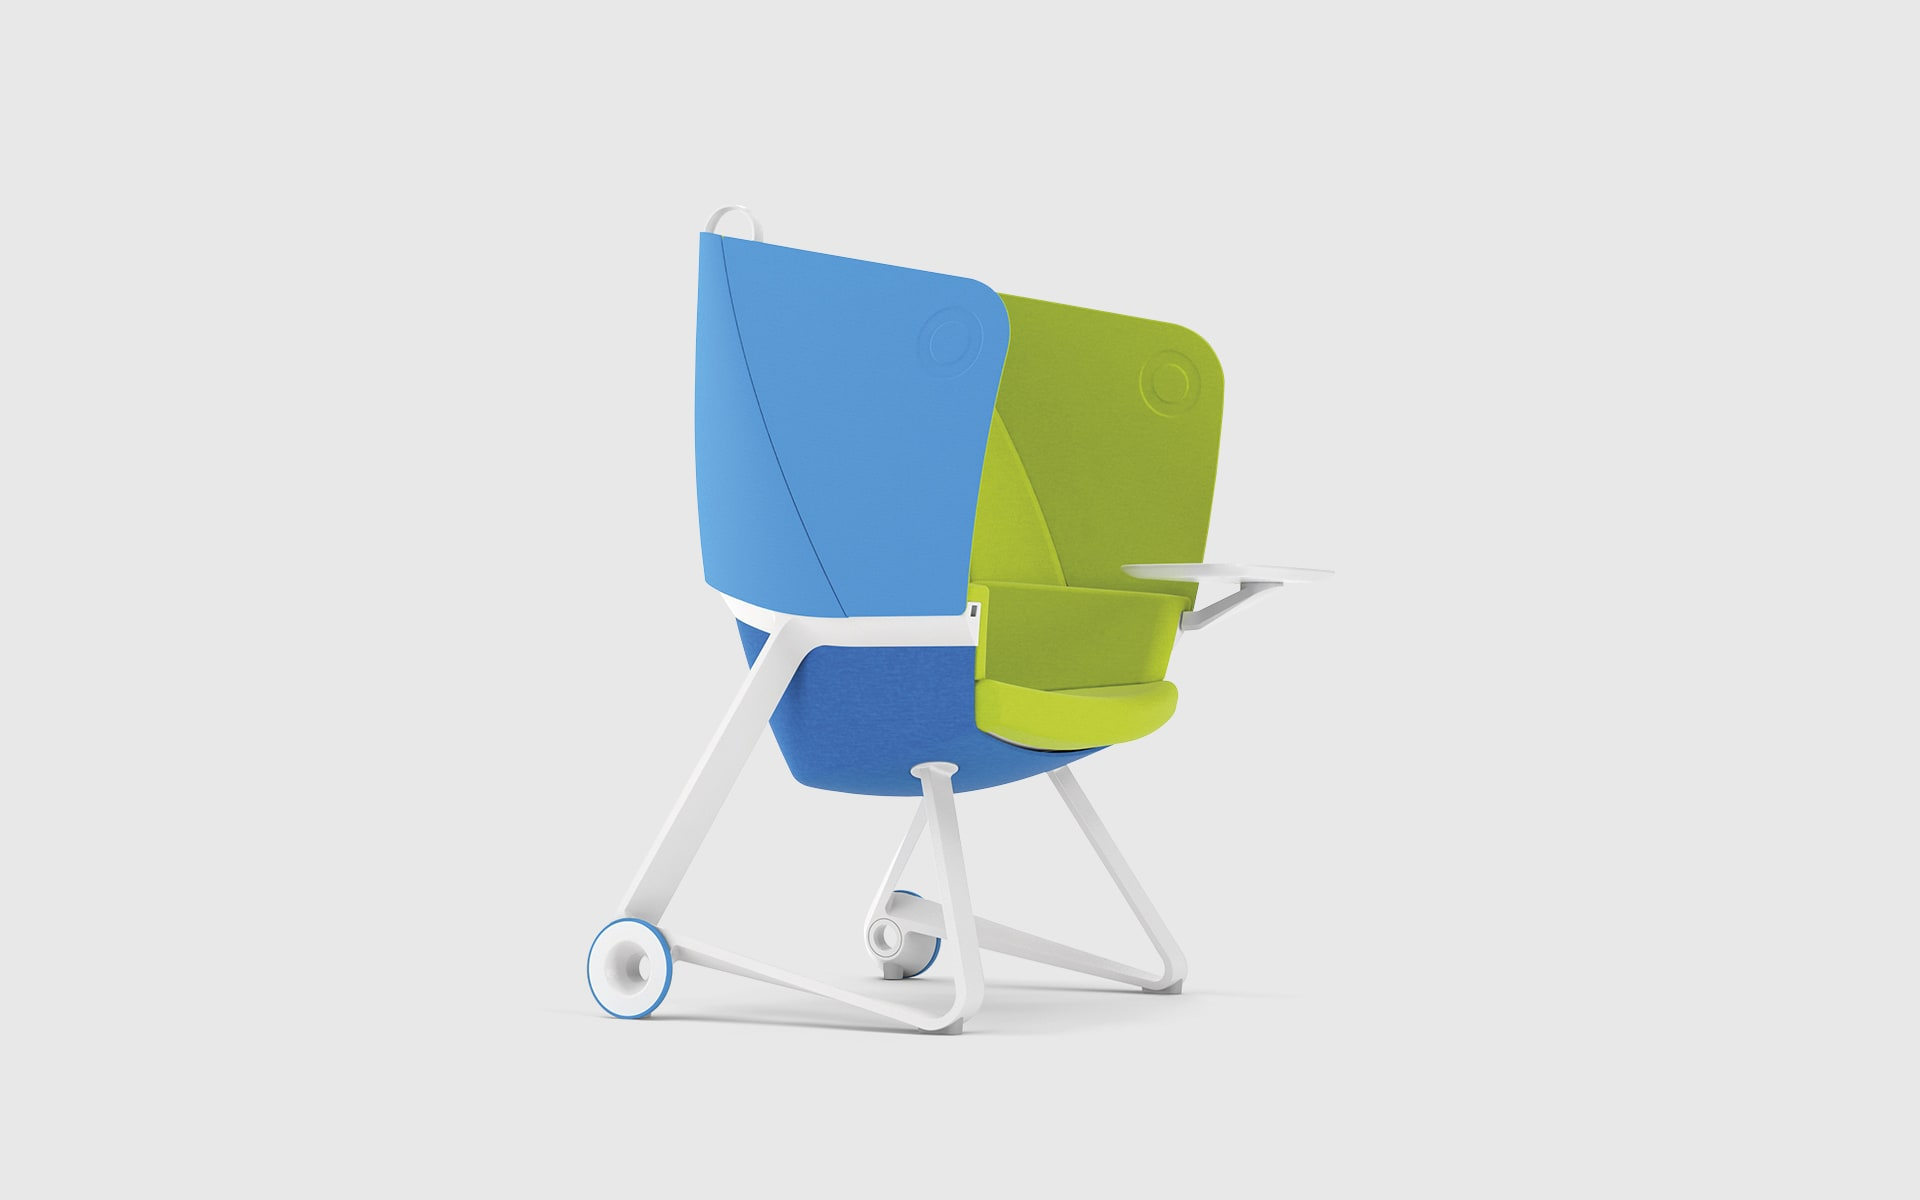 BASF TeamUP chair by ITO Design in bright blue, bright green and white